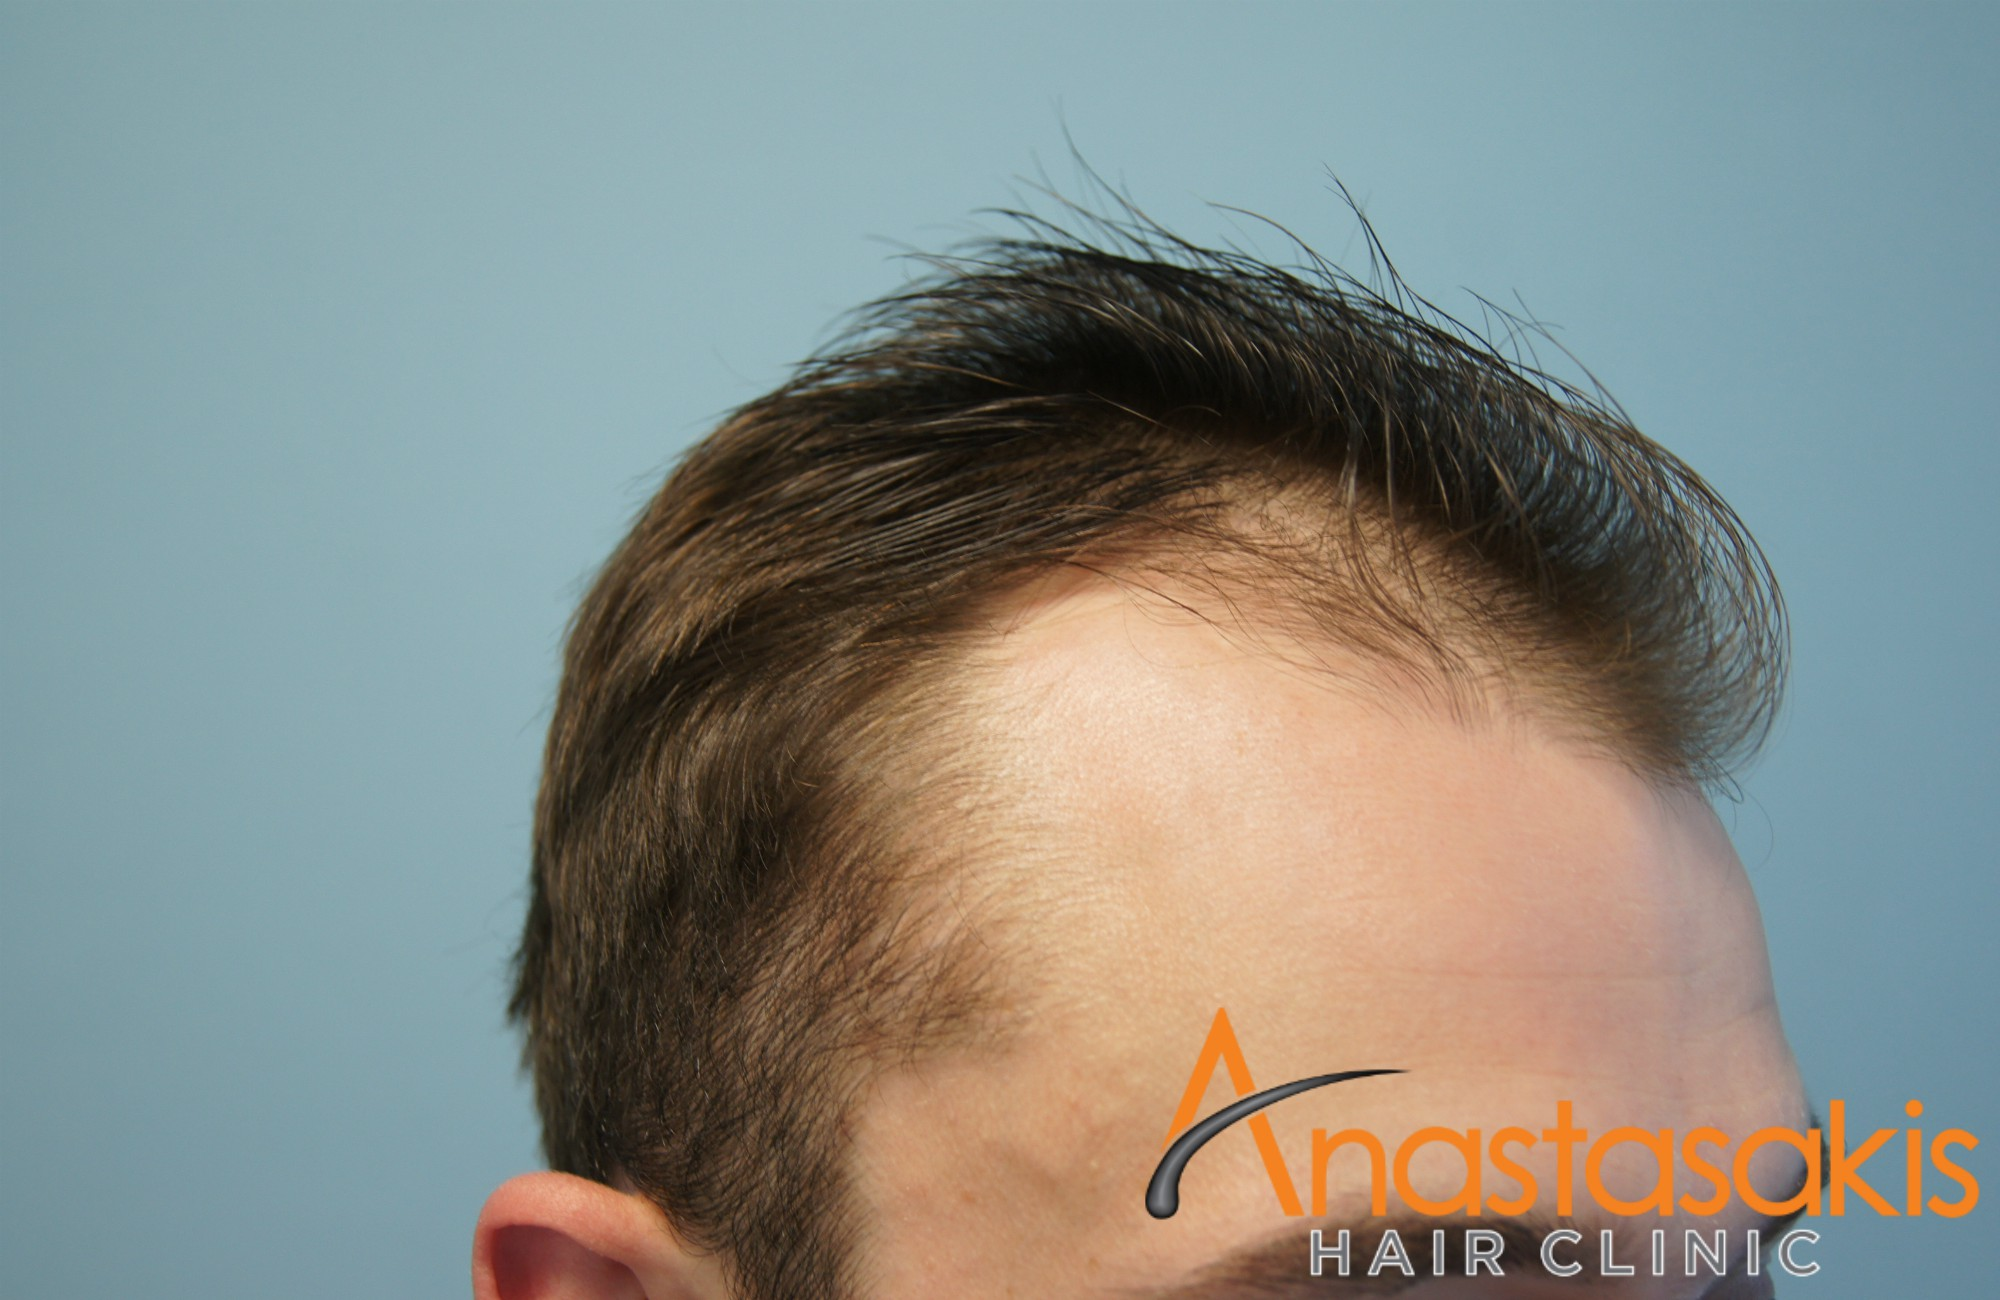 anastasakis-hair-clinic-1300fus-fuemethod-13months later